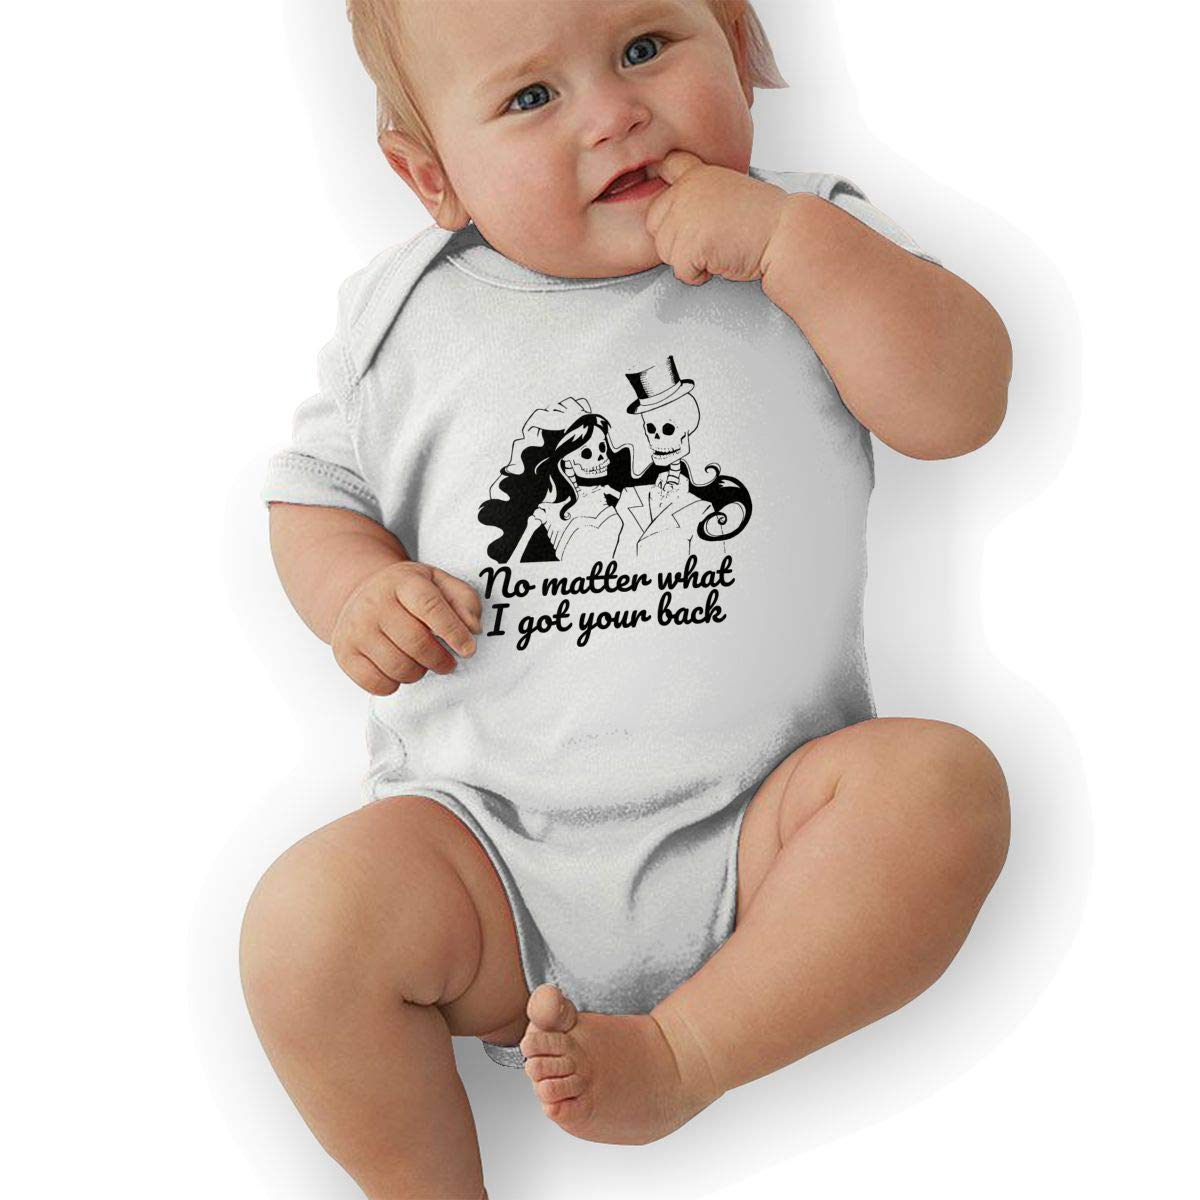 Toddler Baby Girl's Bodysuit Short-Sleeve Onesie No Matter What I Got Your Back Print Outfit Autumn Pajamas